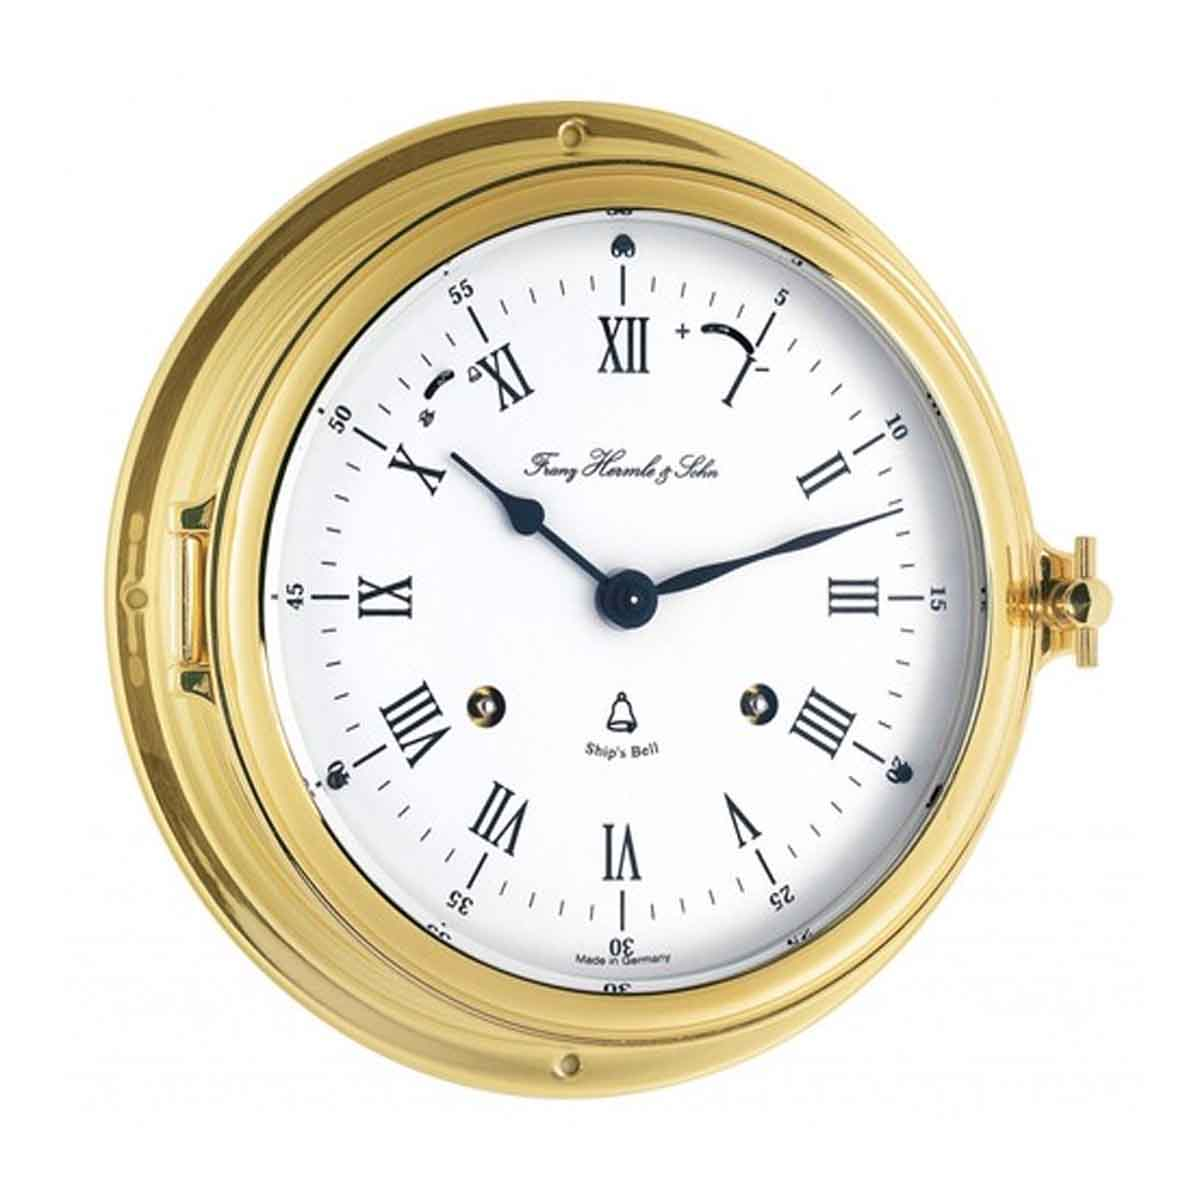 Hermle Salcome 35065 000132 Ships Bell Wall Clock